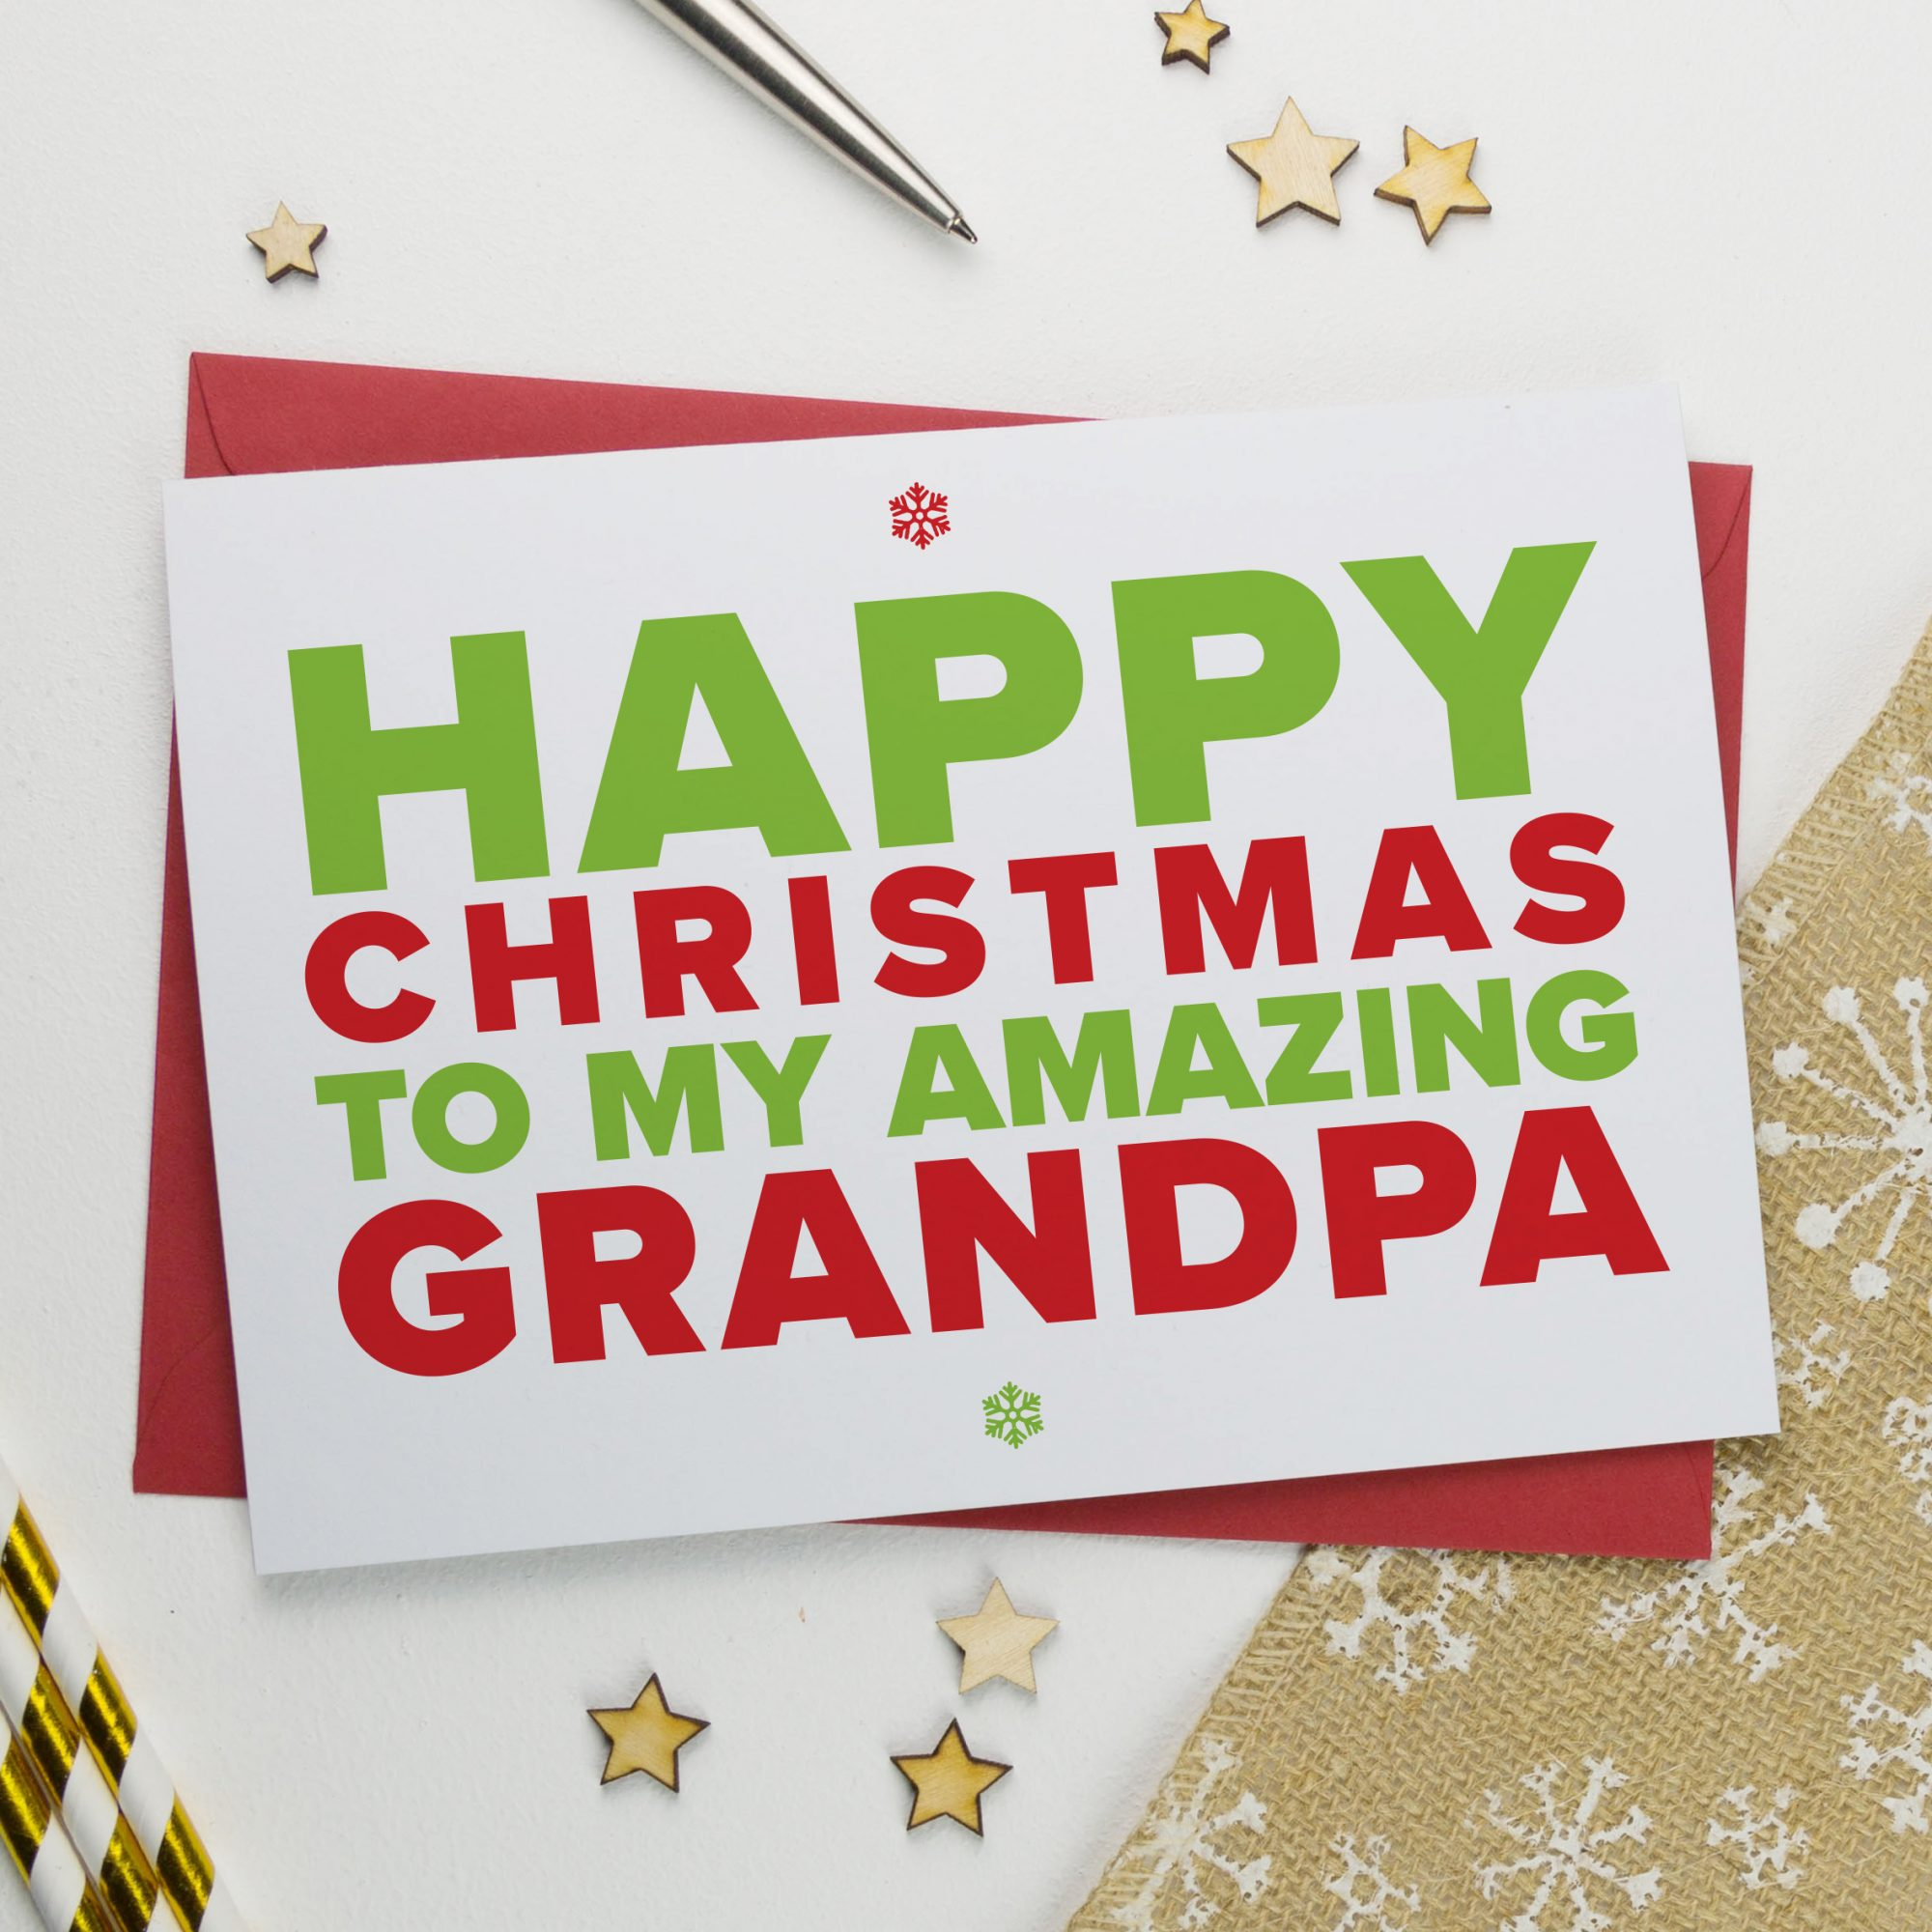 Christmas Card for An Amazing Grandad